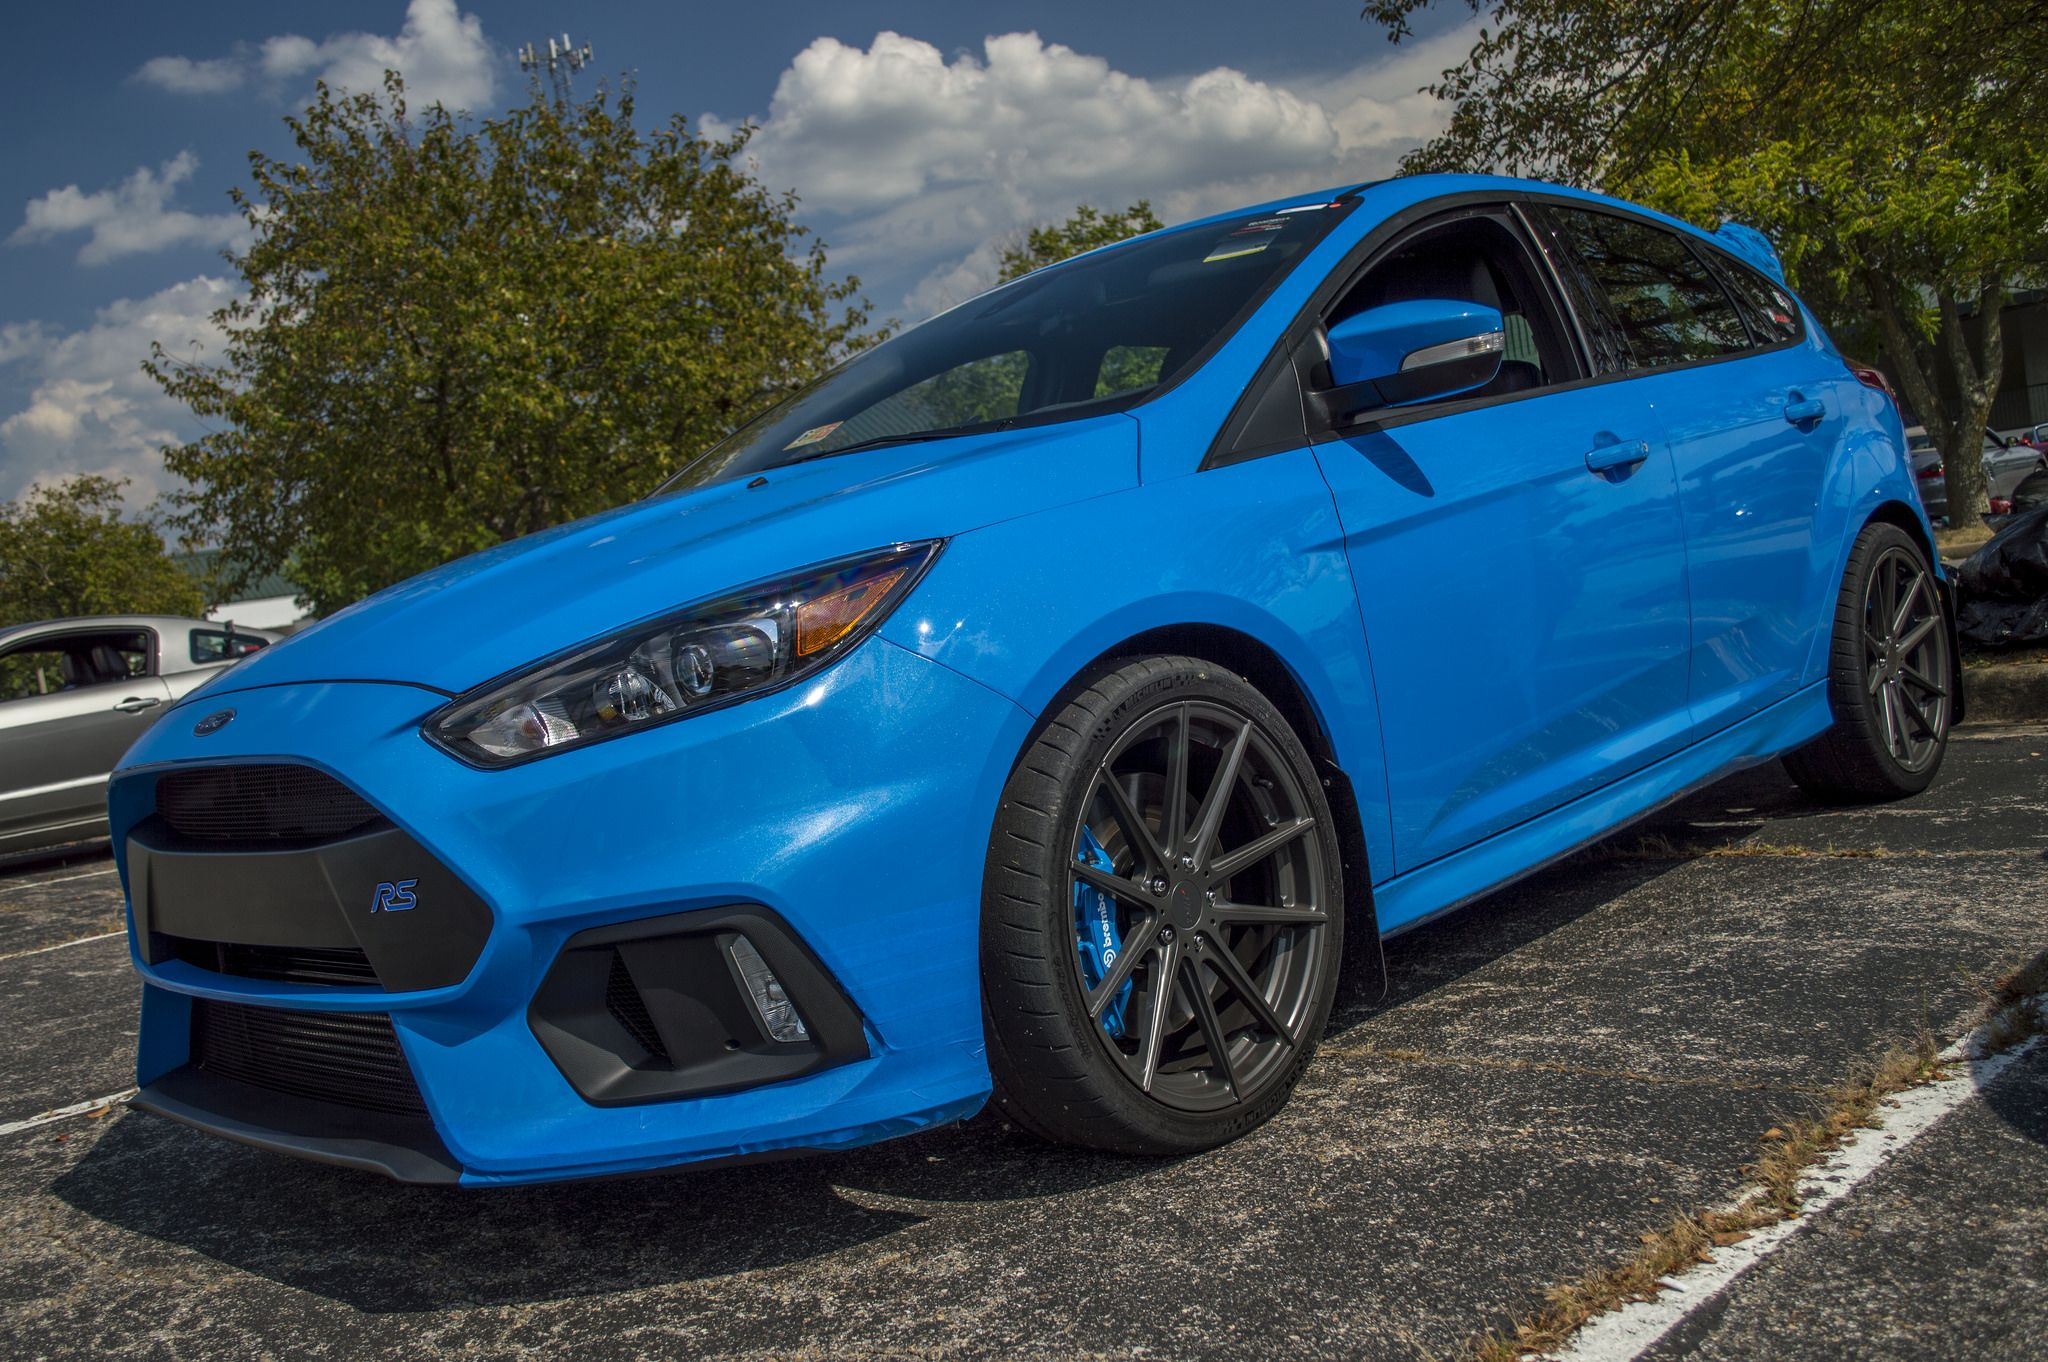 Take A Look At Cj Customer And Autocross Enthusiast Zach S Nitrous Blue Focus Rs Check Out Those Awesome Tsw Alloy Batthurst Whee Tsw Wheels Wheel Autocross